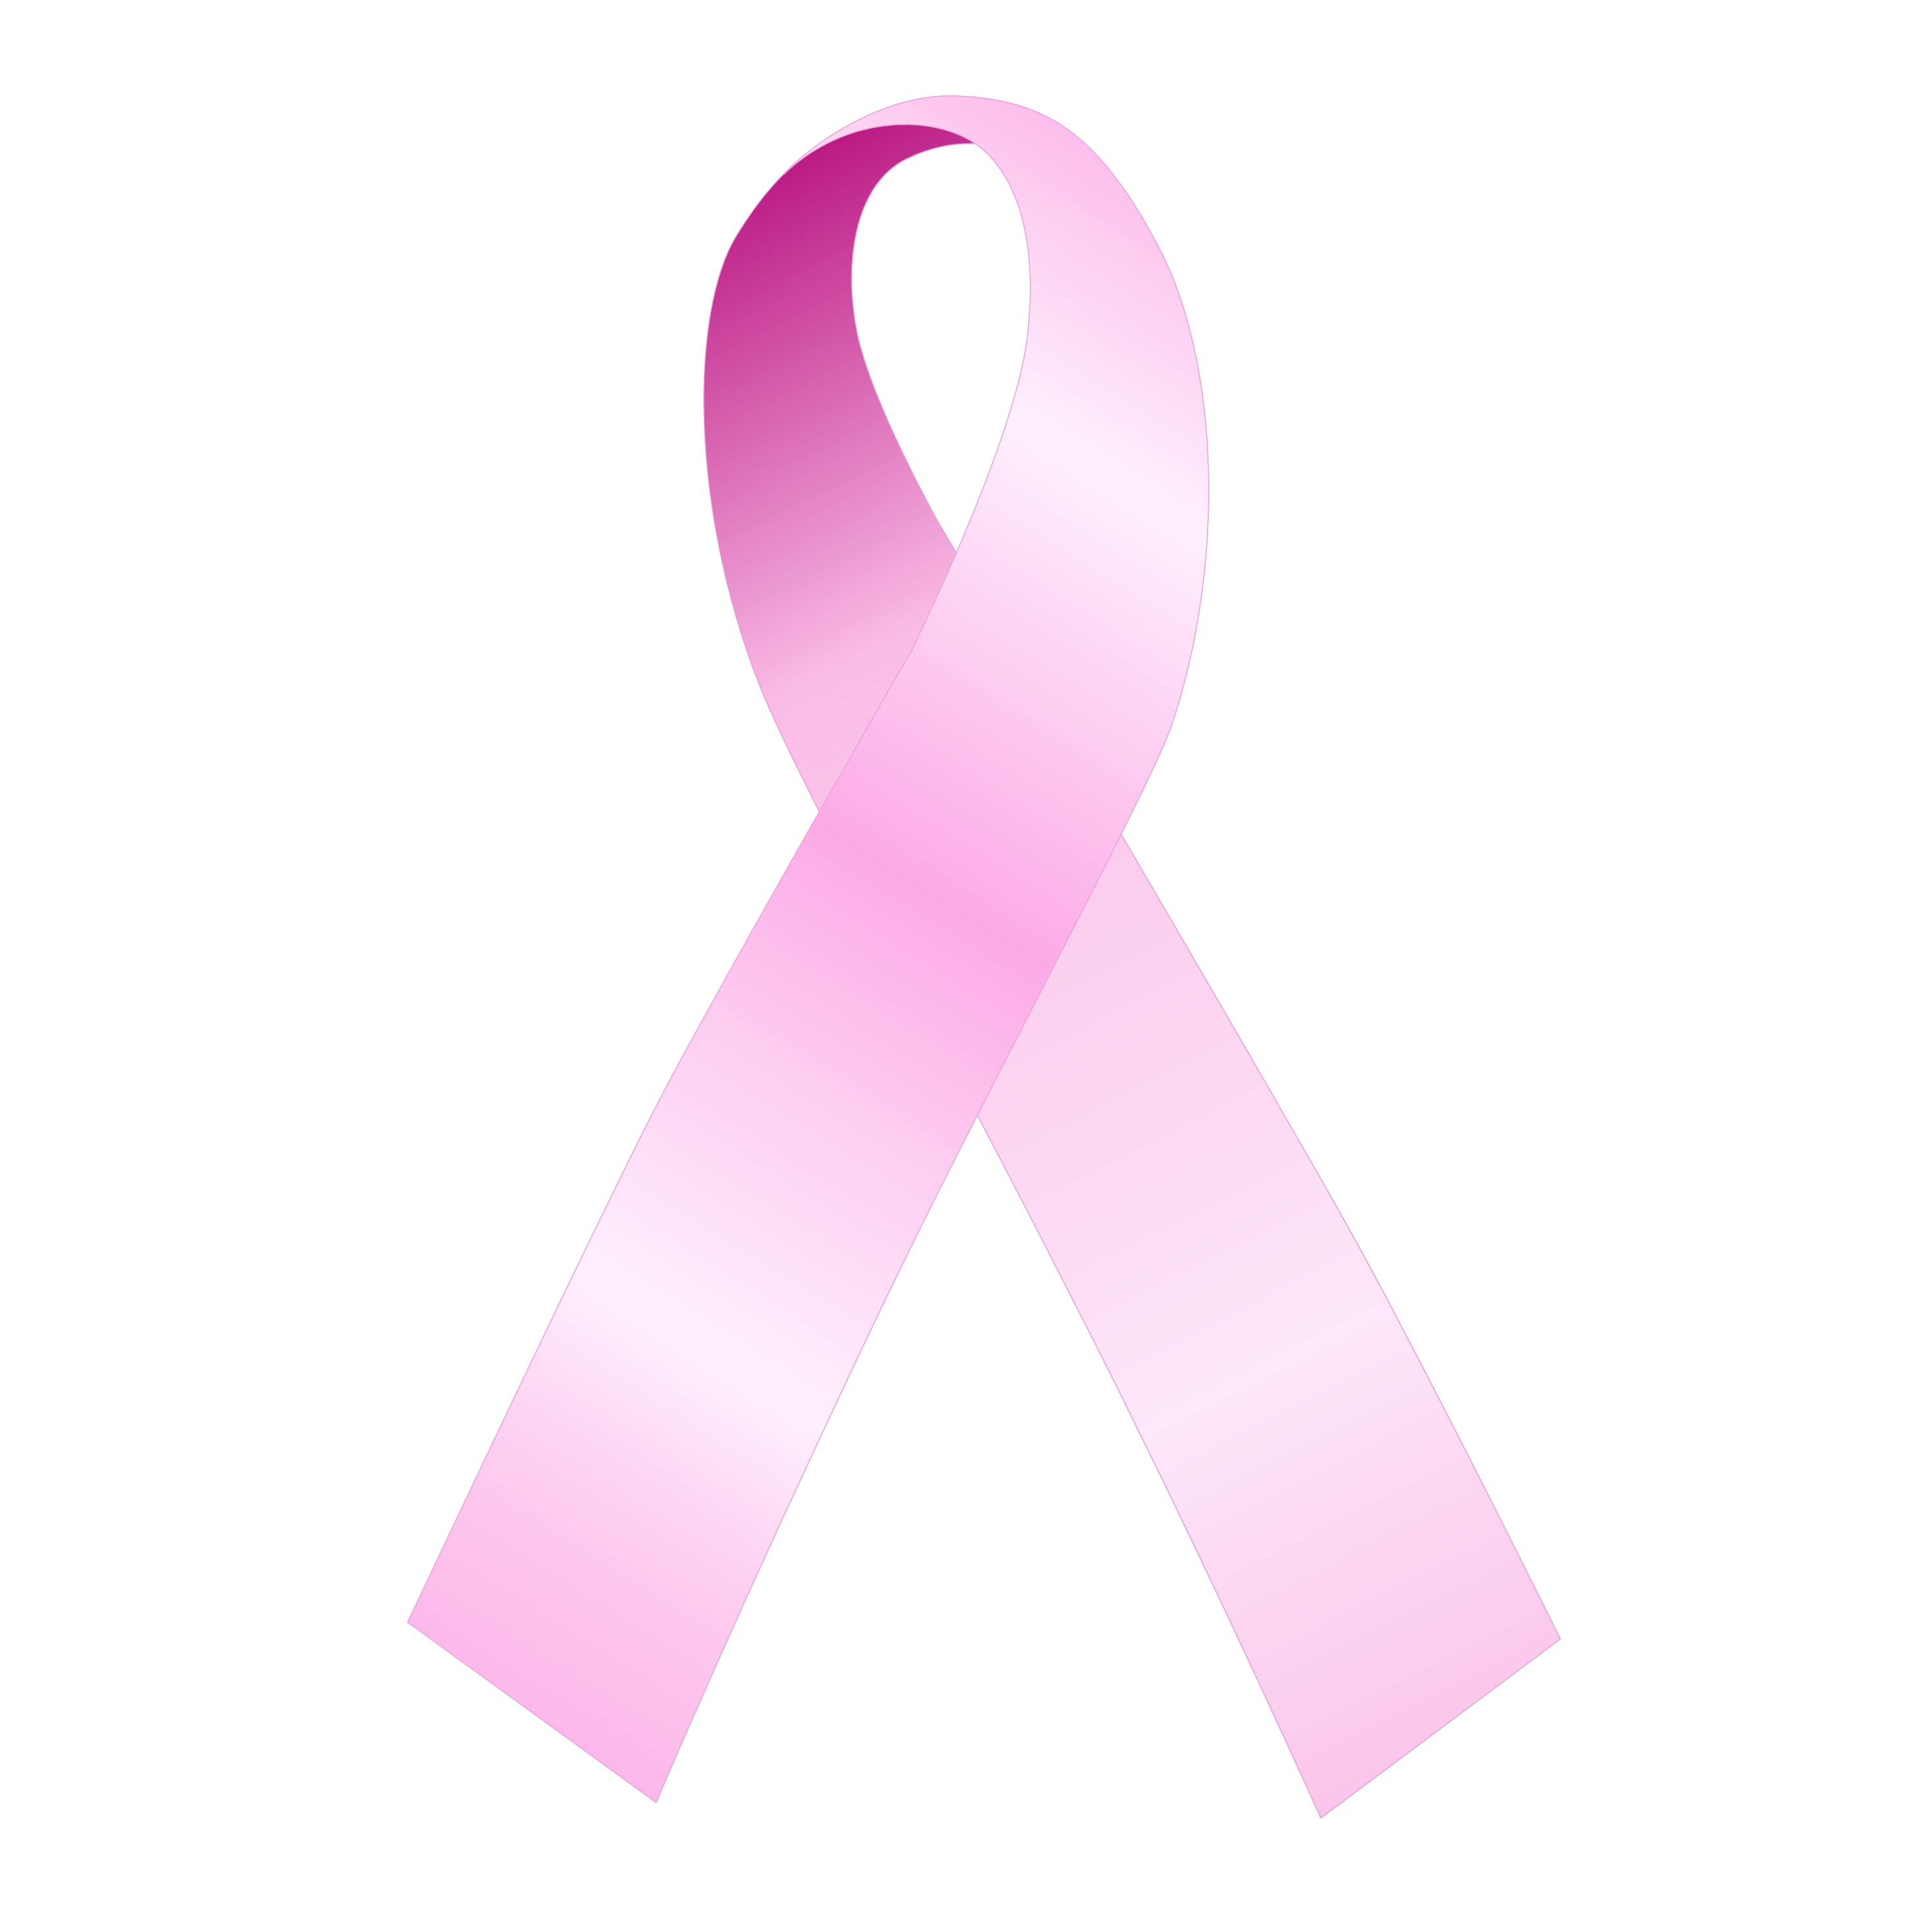 Ribbon transparent background clipart stock Breast Cancer Awareness Ribbons stock